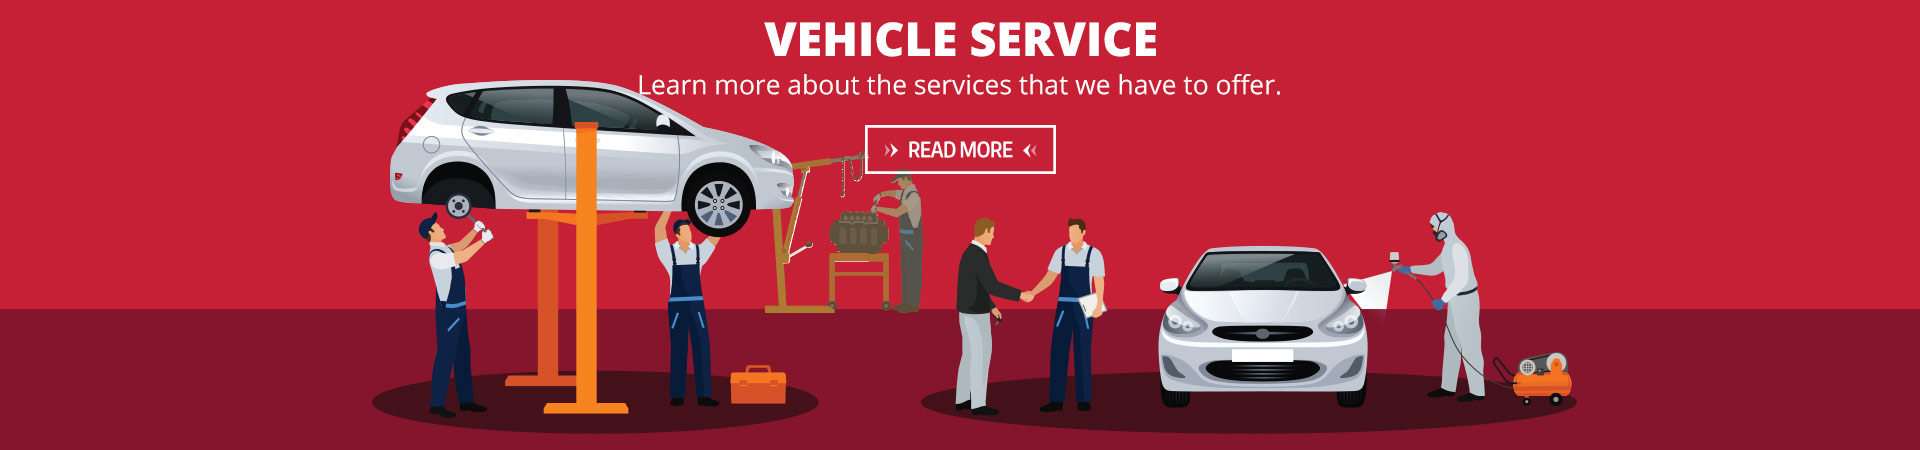 Nissan Vehicle Service